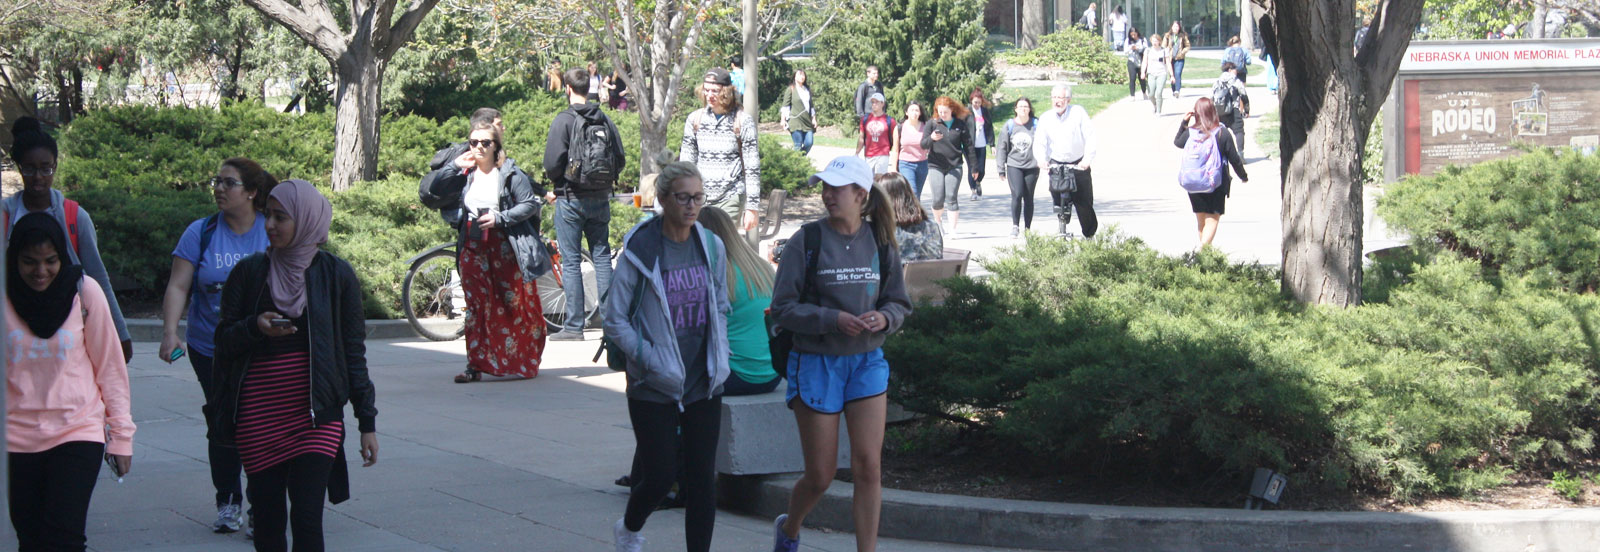 Students walking across University of Nebraska campus